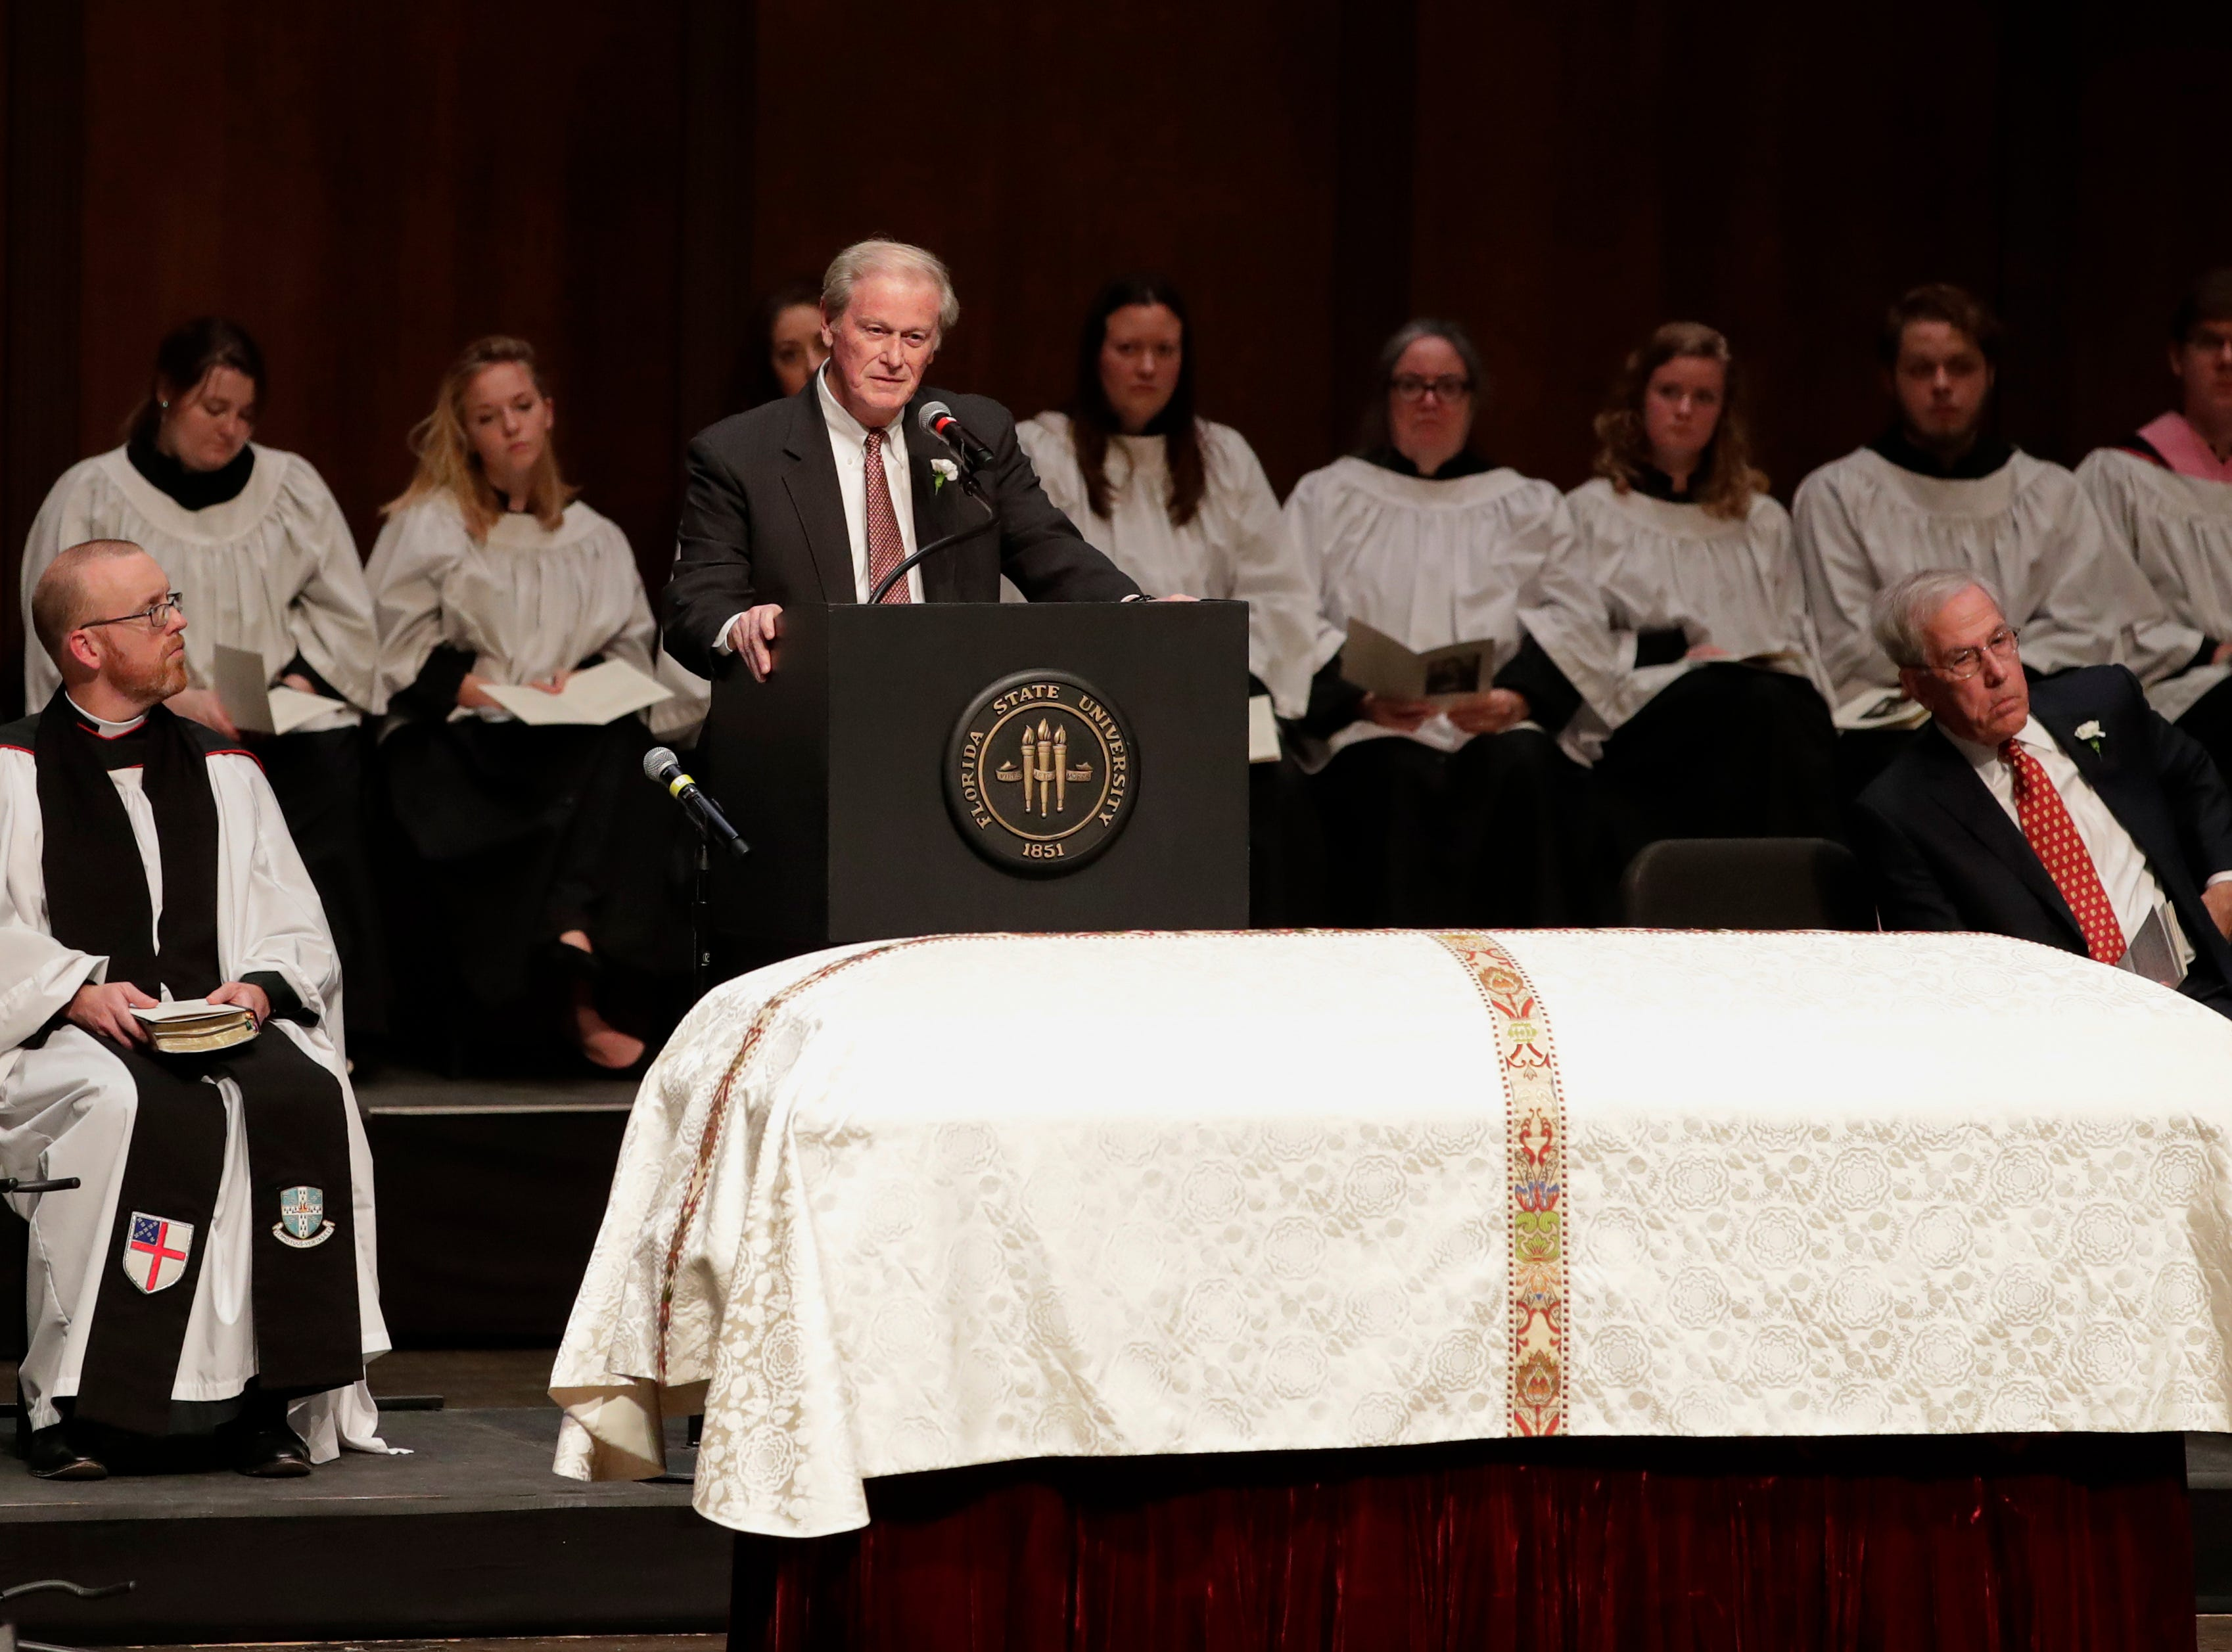 Florida State University President John Trasher shares his words of remembrance during a funeral service for Florida State University President Emeritus T.K. Wetherell held at Ruby Diamond Concert Hall Friday, Dec. 21, 2018.